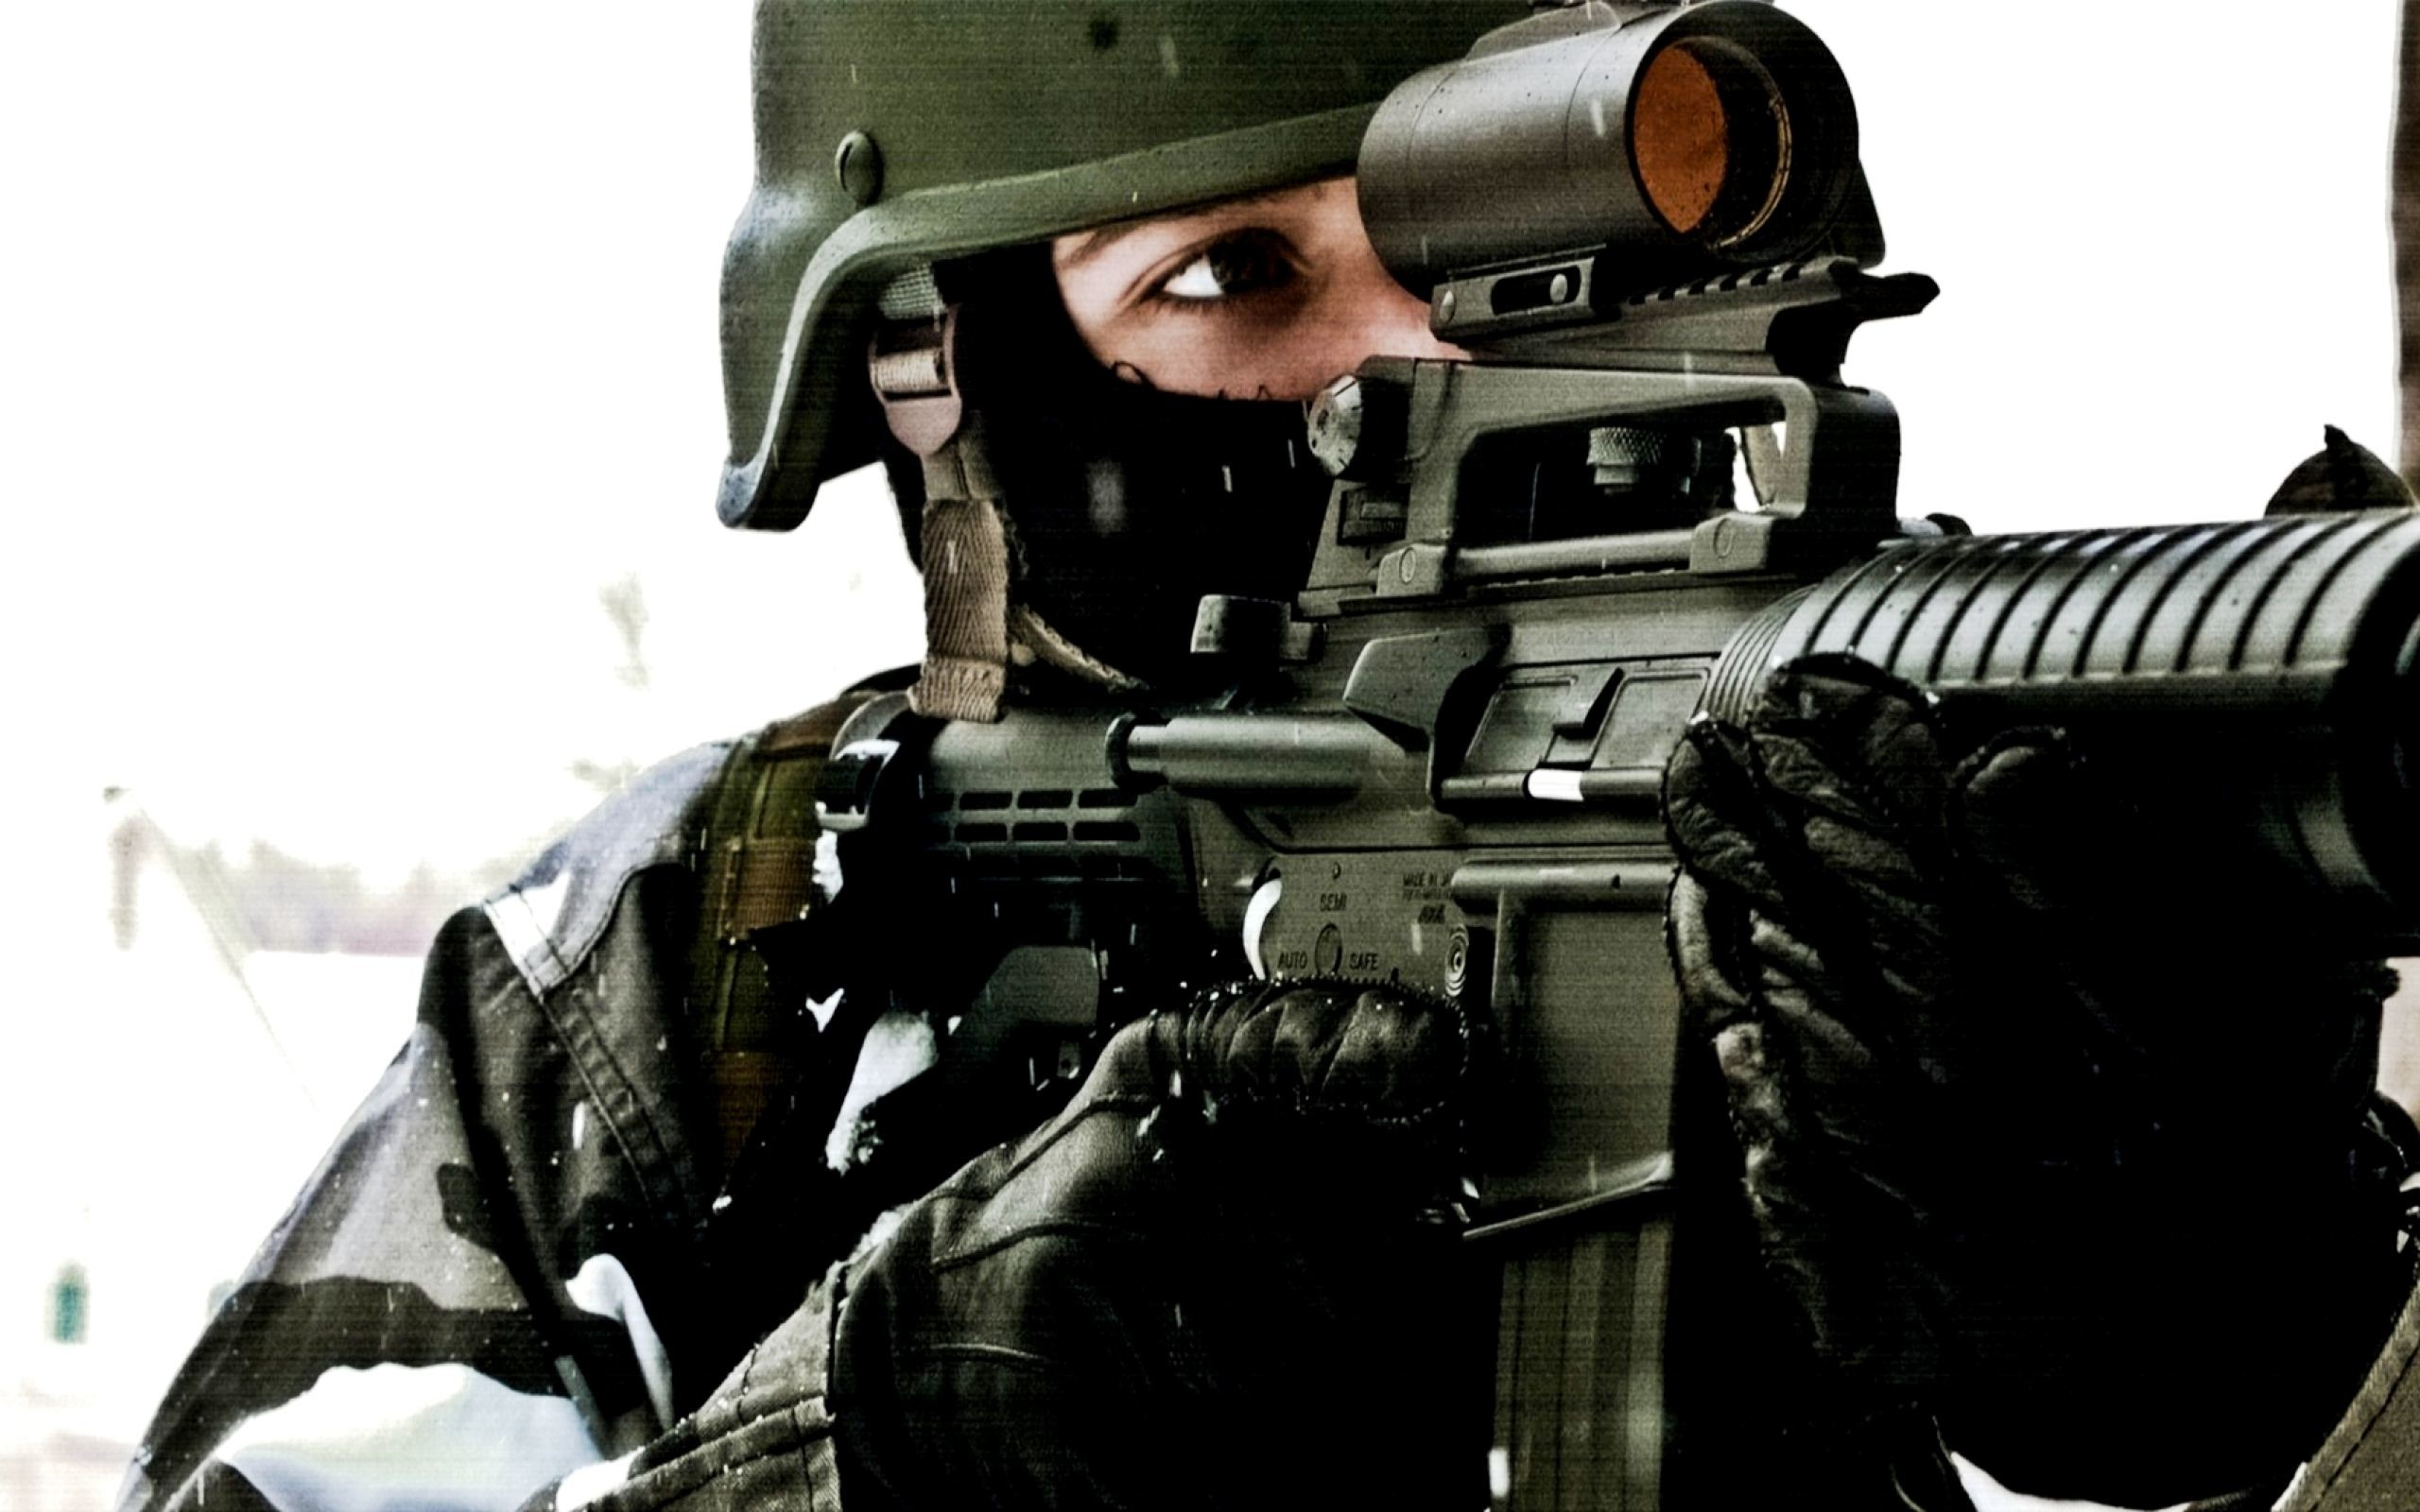 2560x1600 army special forces wallpaper Group with 55 items